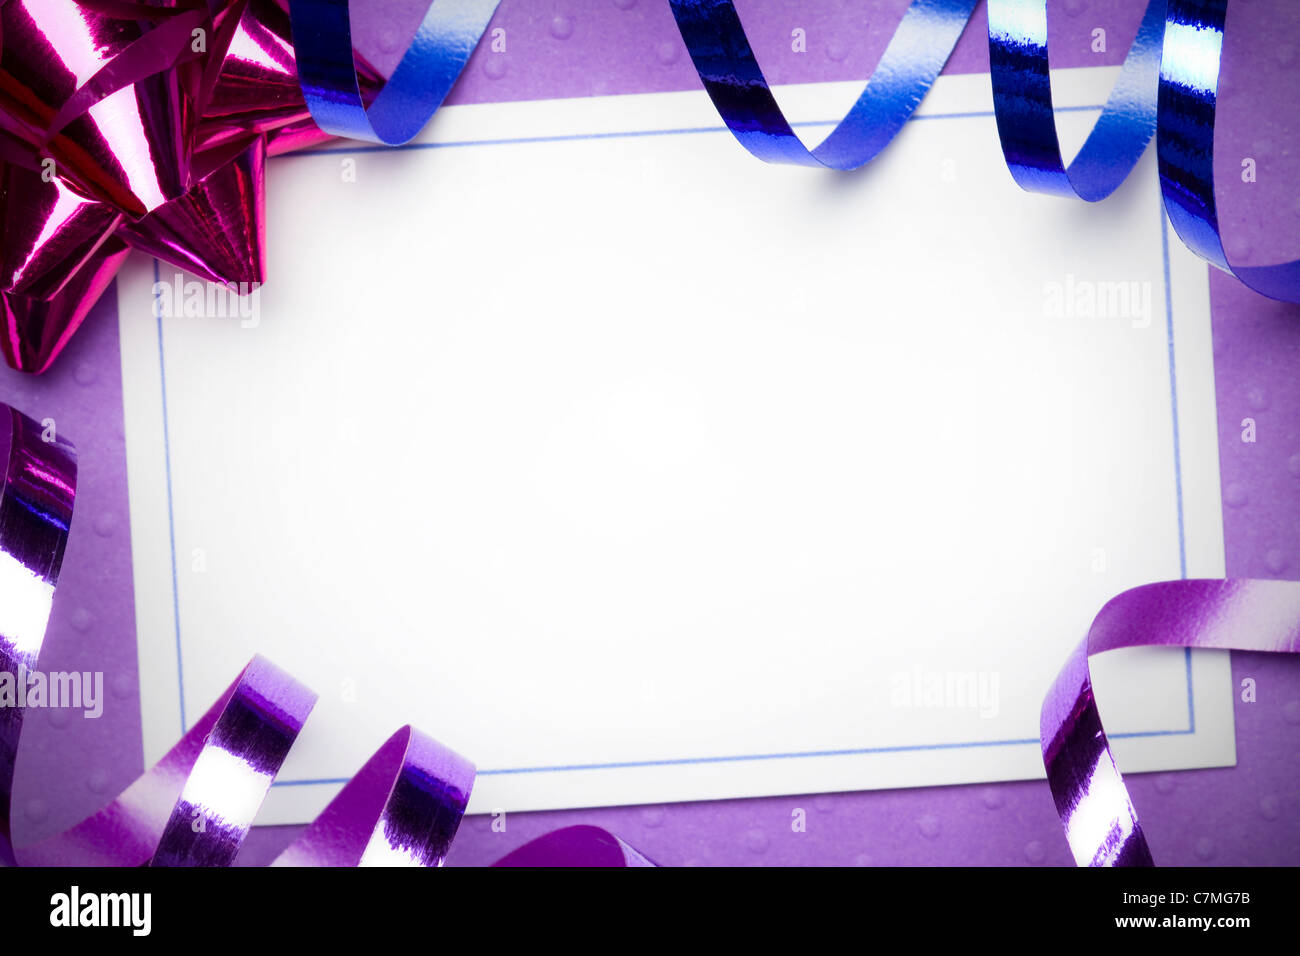 Party background - Stock Image